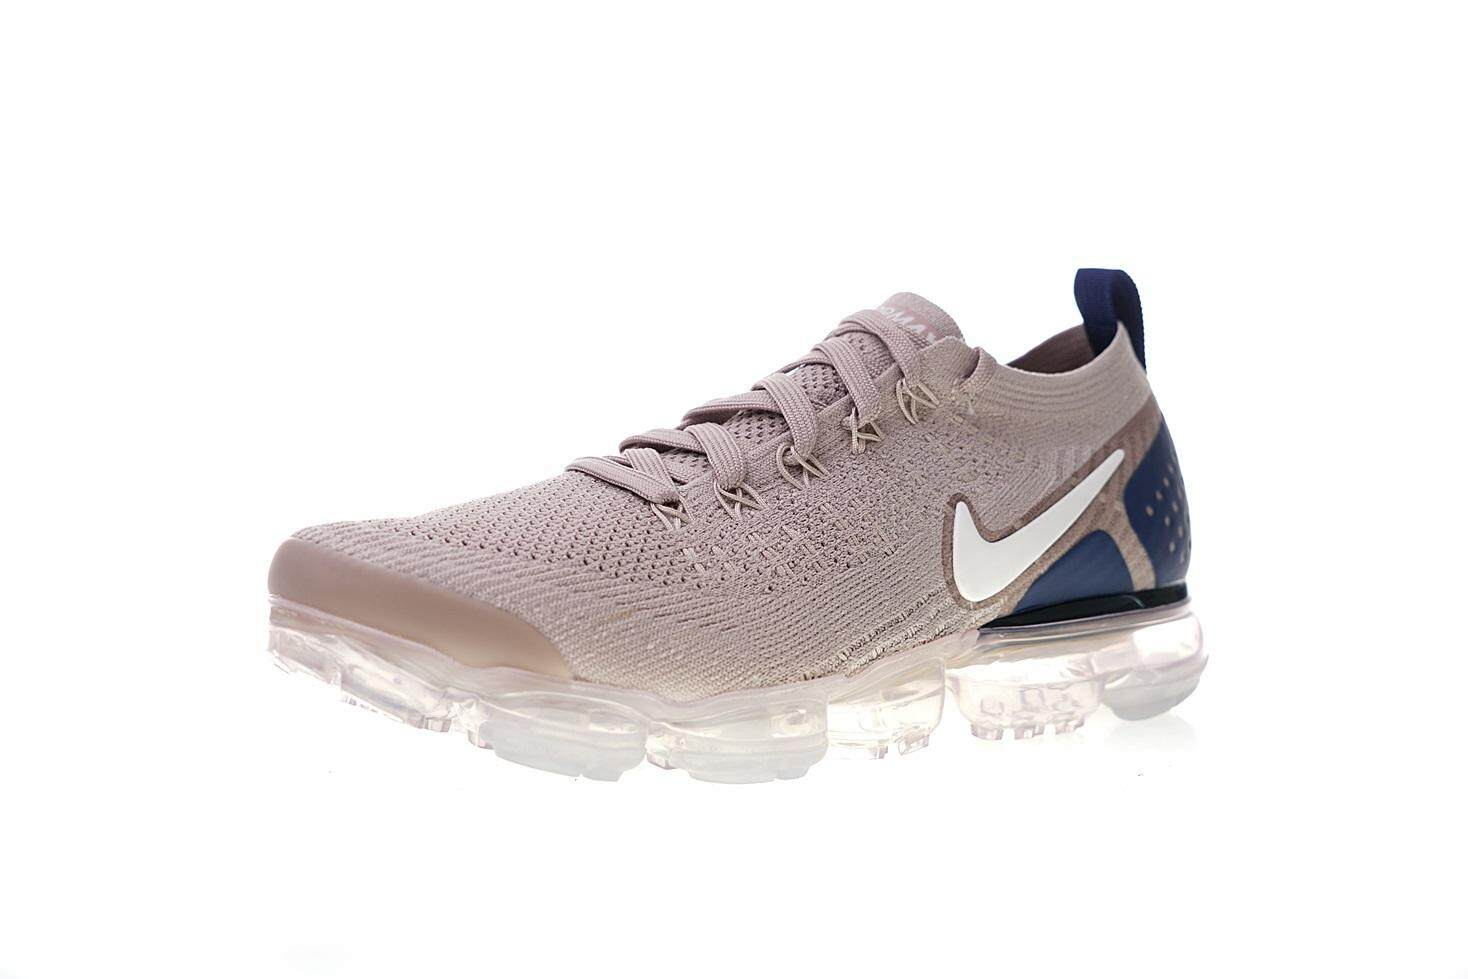 9f69260ad1ed Nike Philippines - Nike Sports Shoes for sale - prices   reviews ...